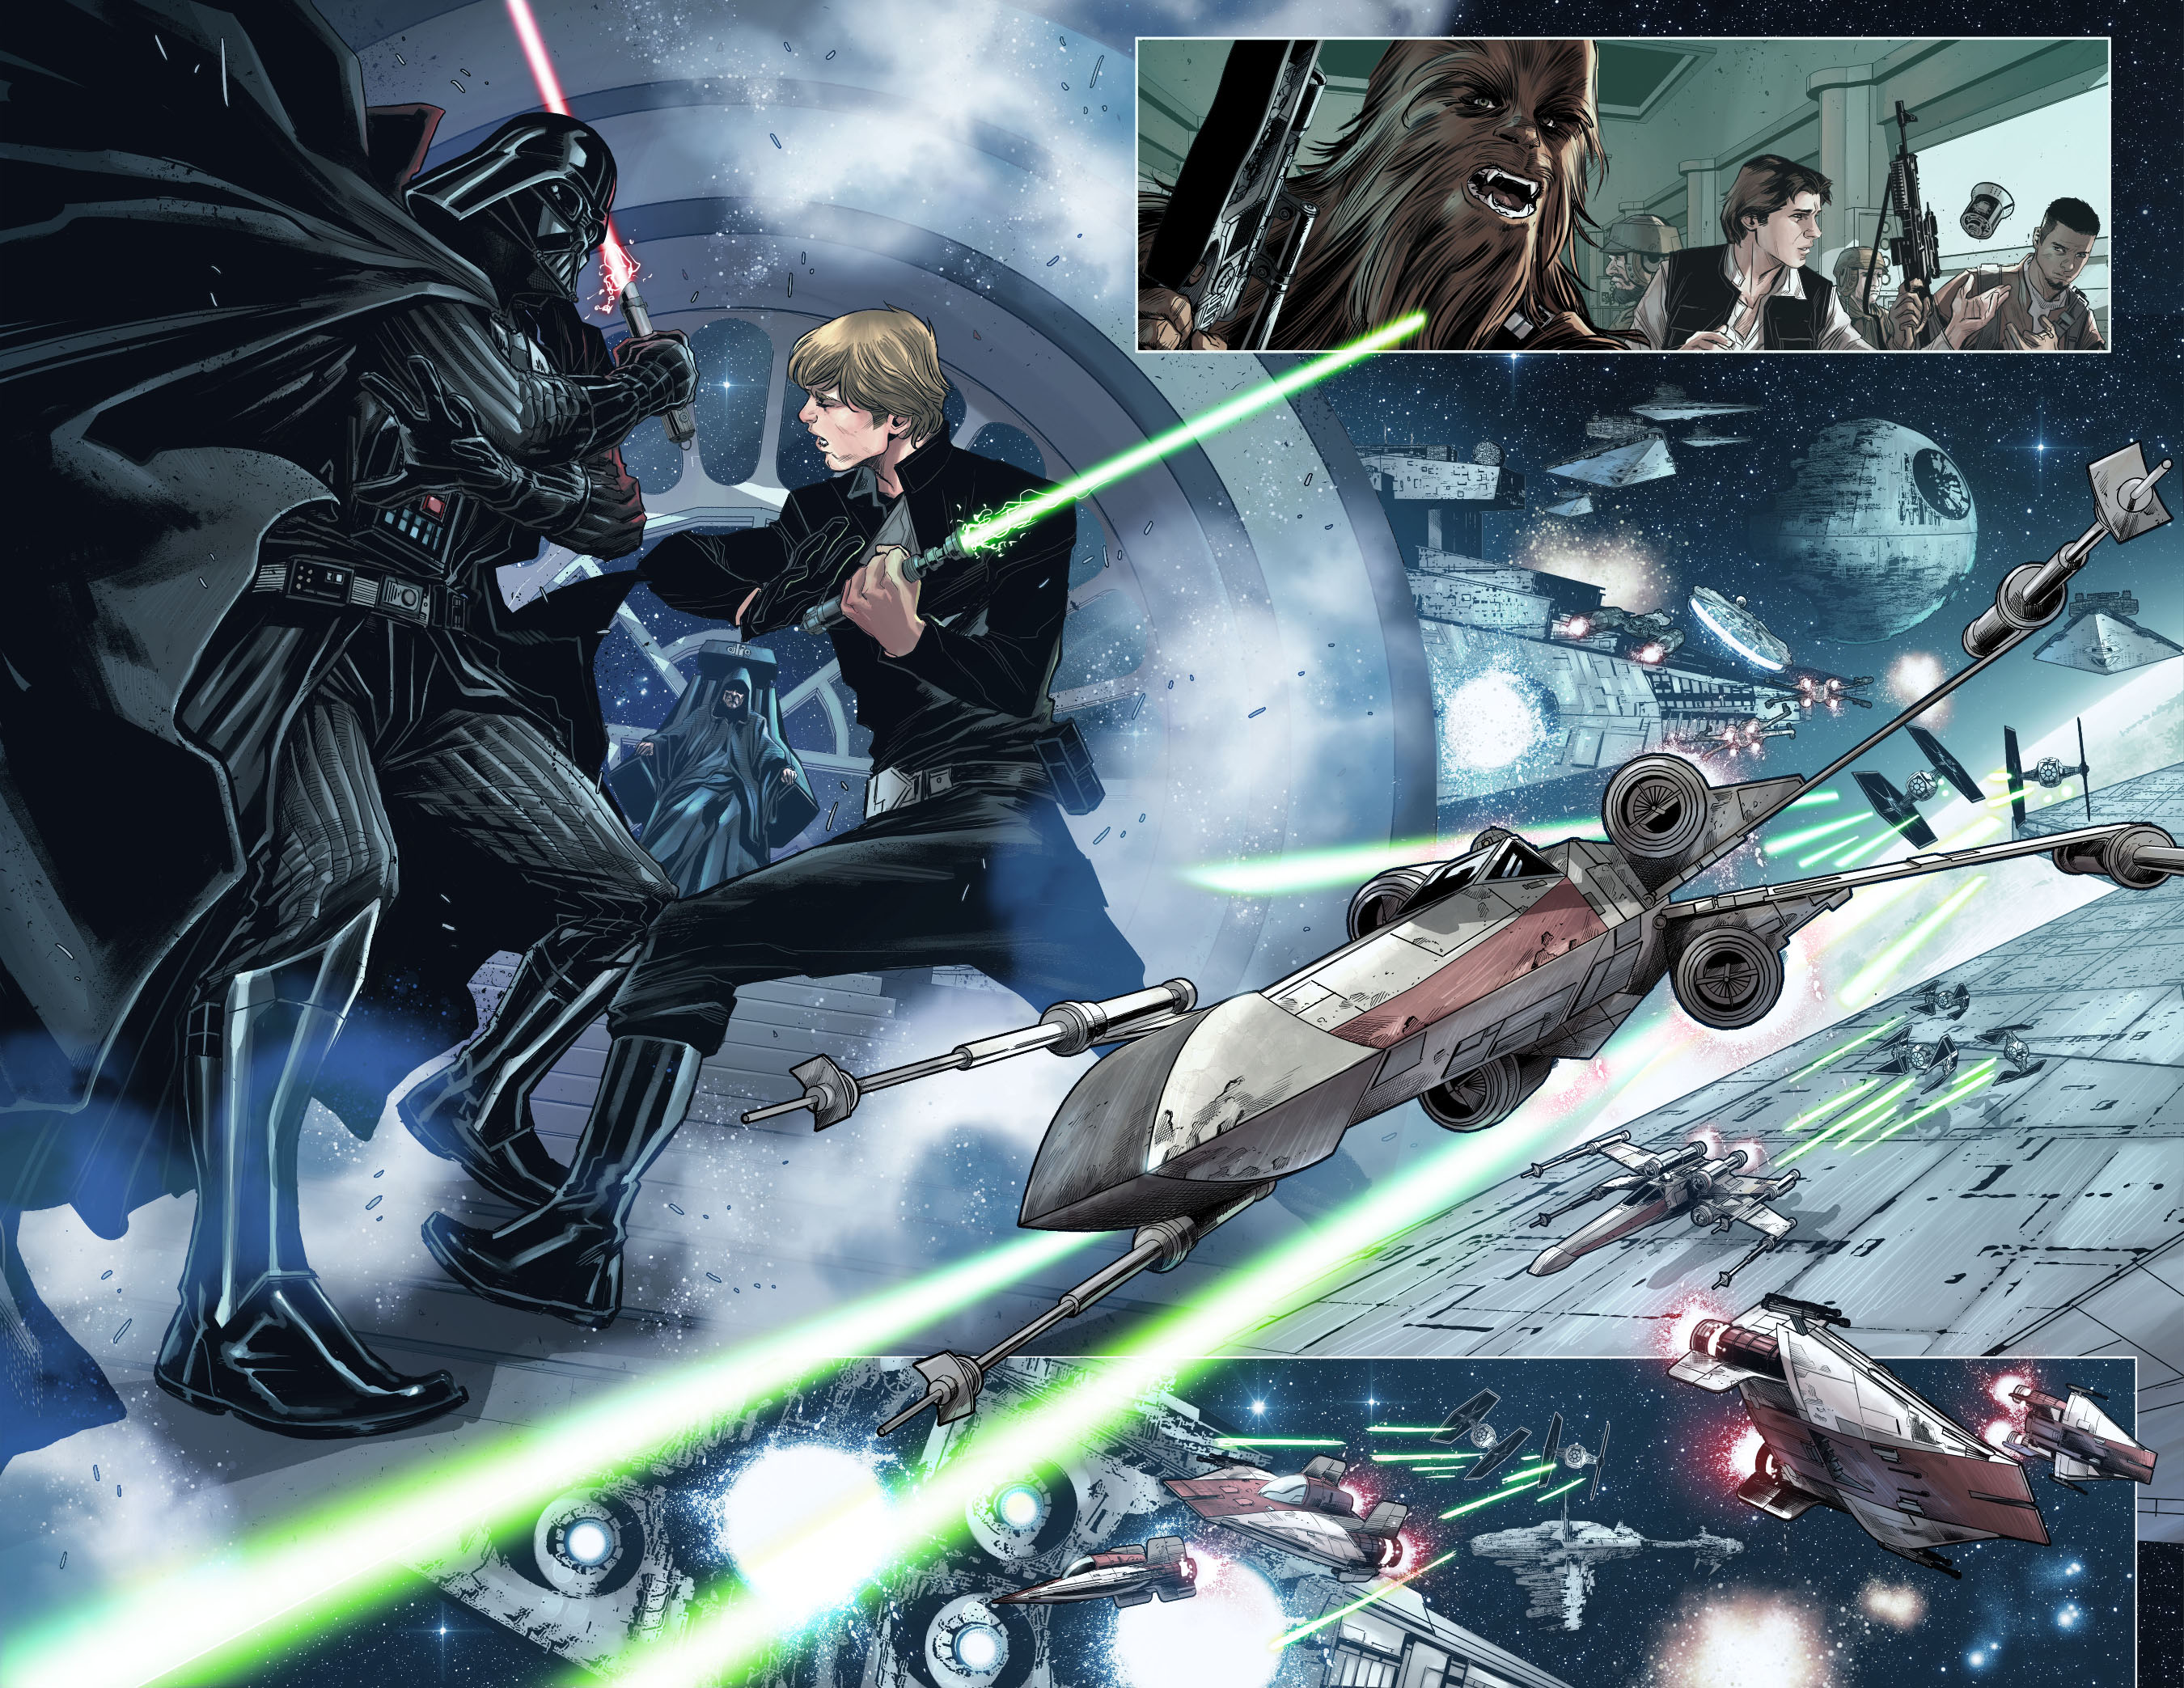 Journey_to_Star_Wars_The_Force_Awakens_Shattered_Empire_Preview_1